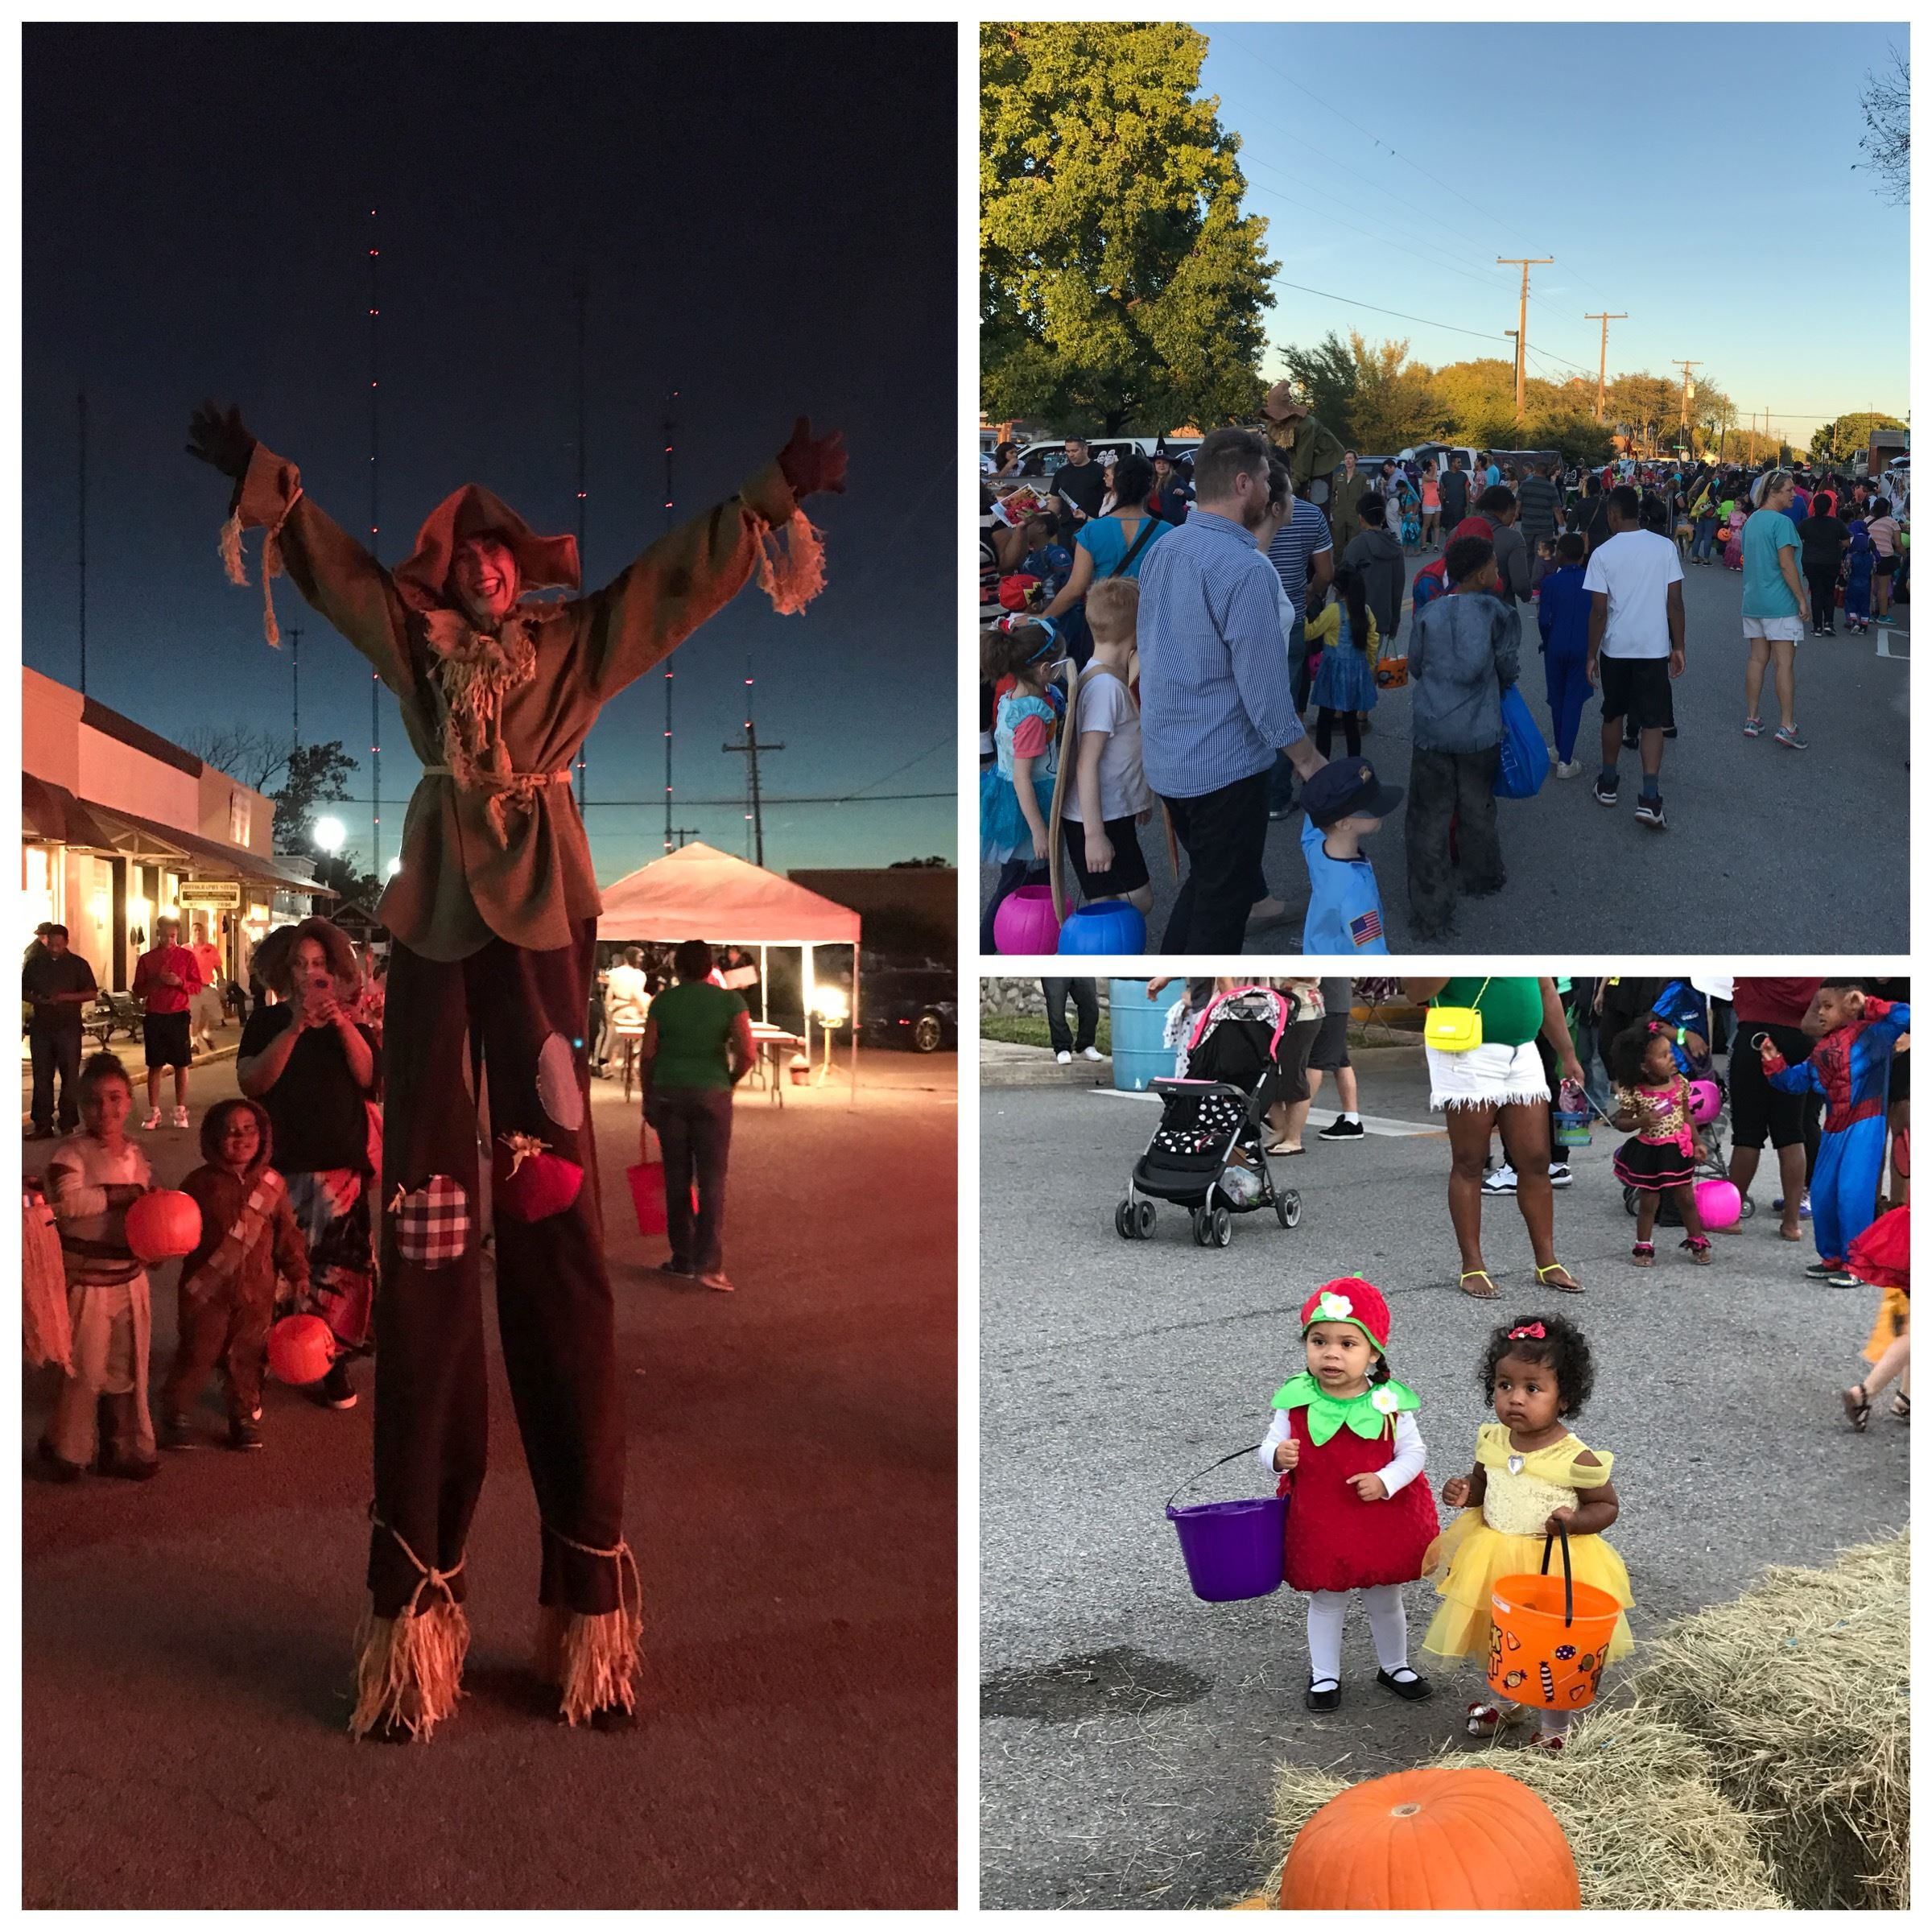 Scarecrow on Stilts, People Walking, and Two Toddlers in Costume